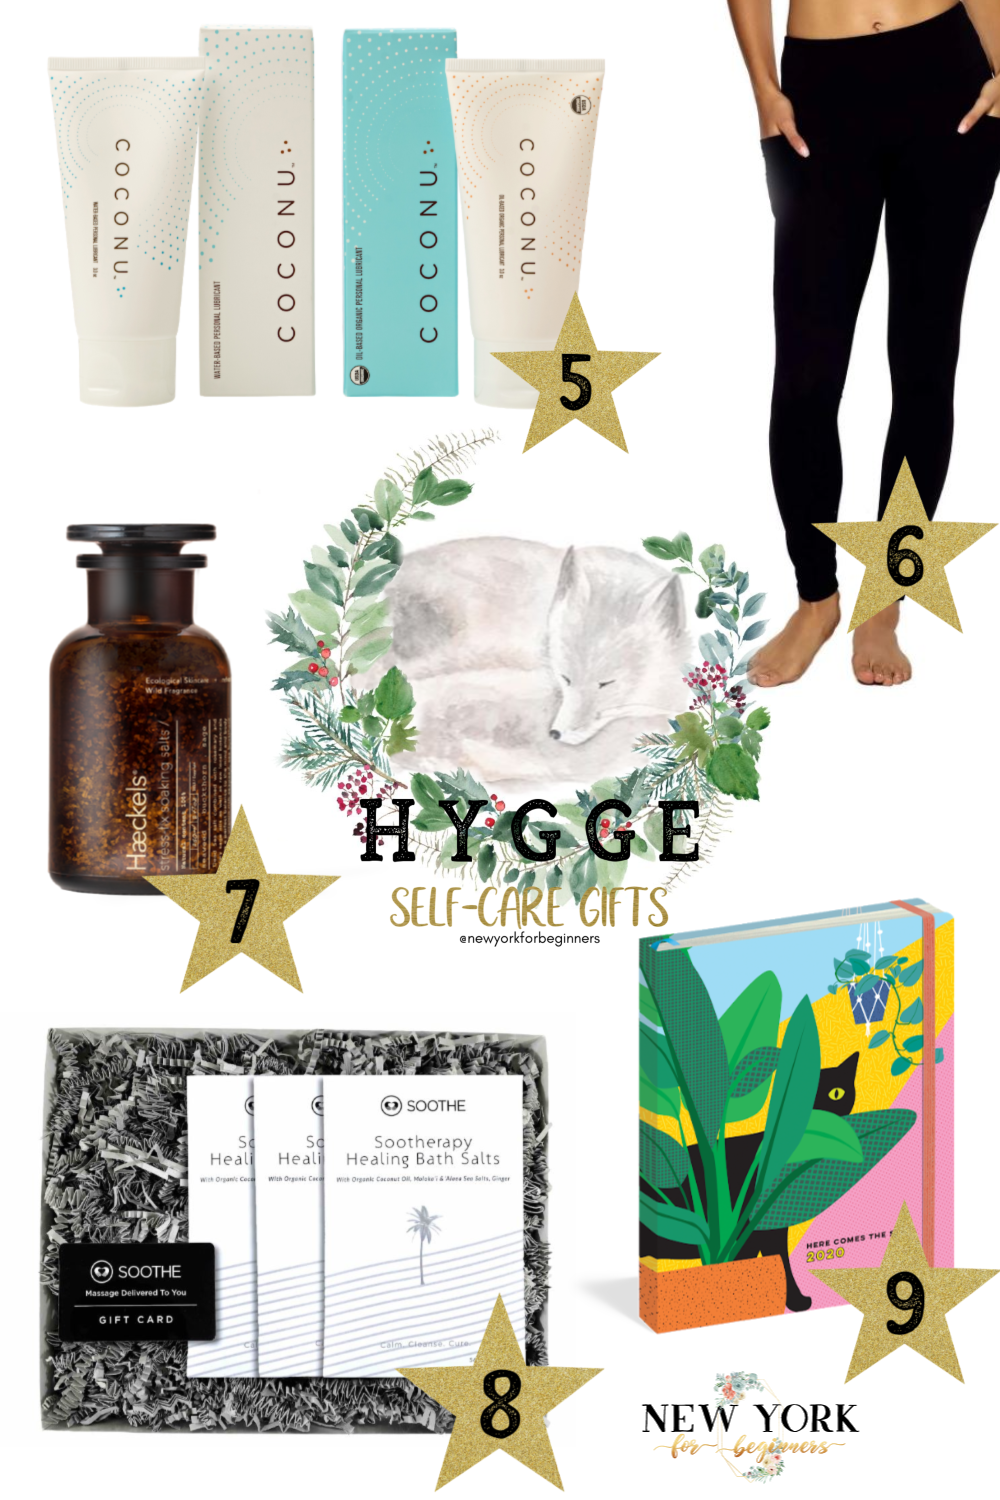 Selection of meaningful hygge gifts for the holidays